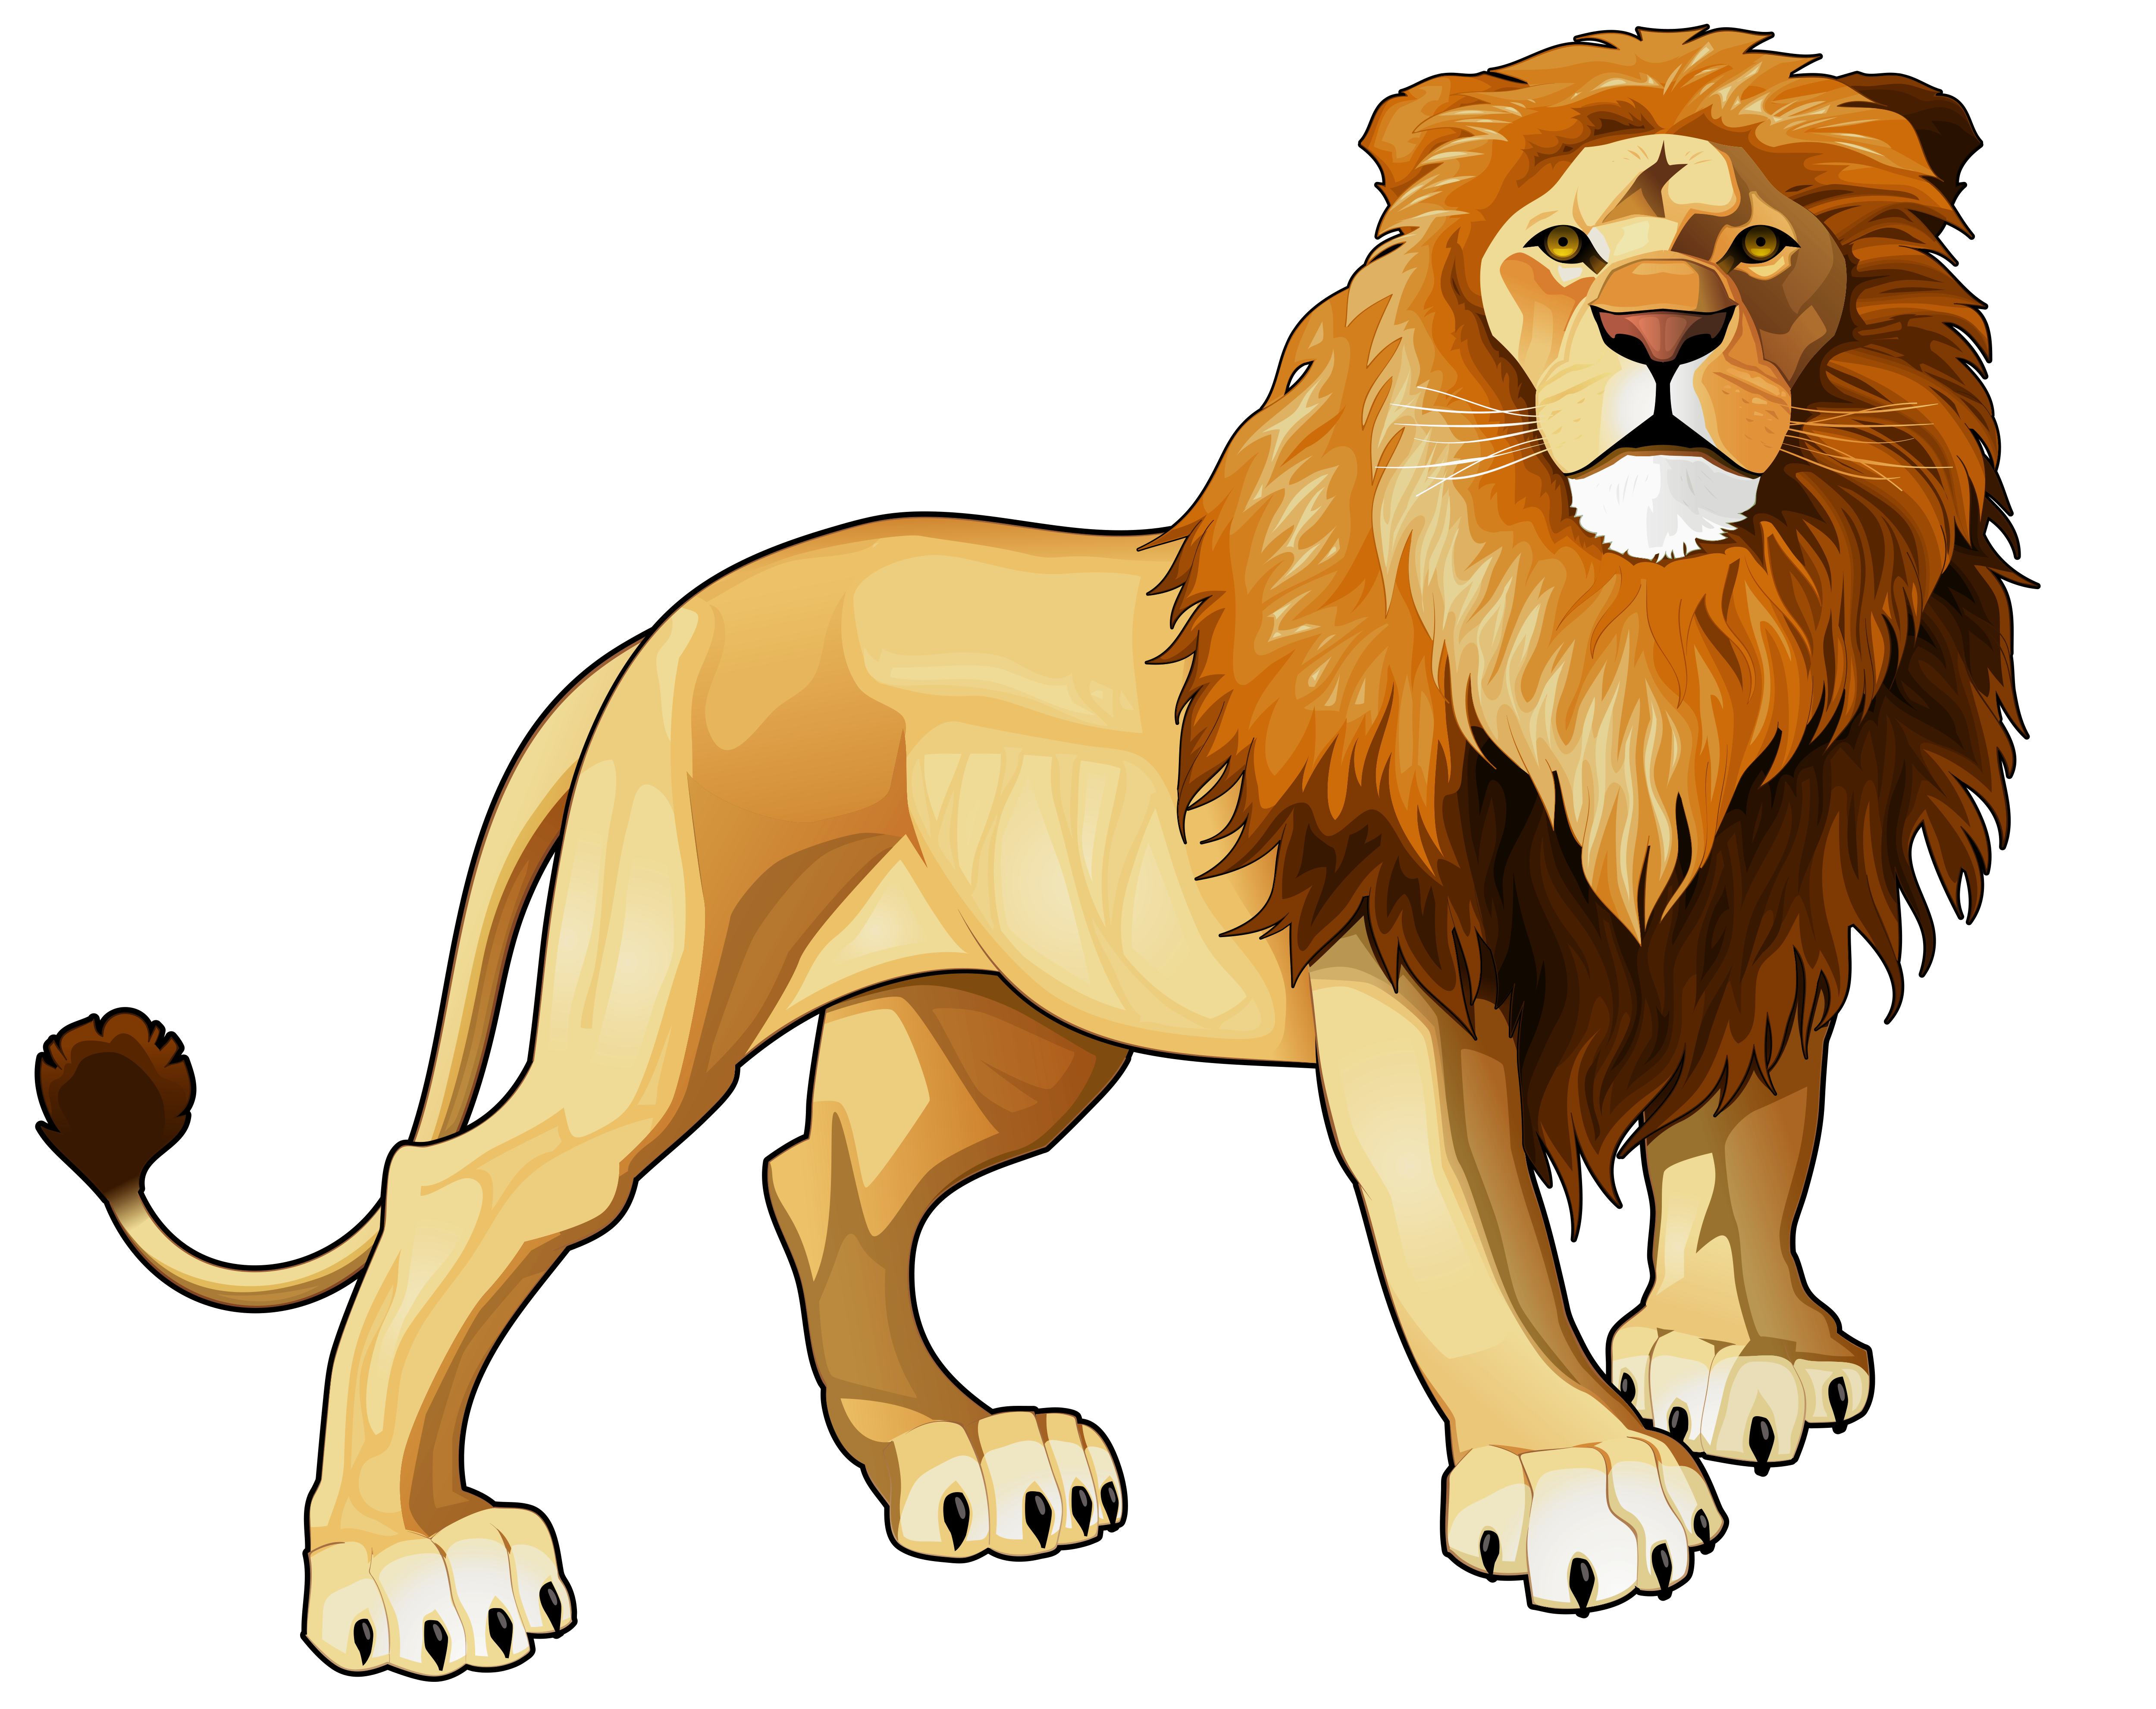 Lion clipart #2, Download drawings